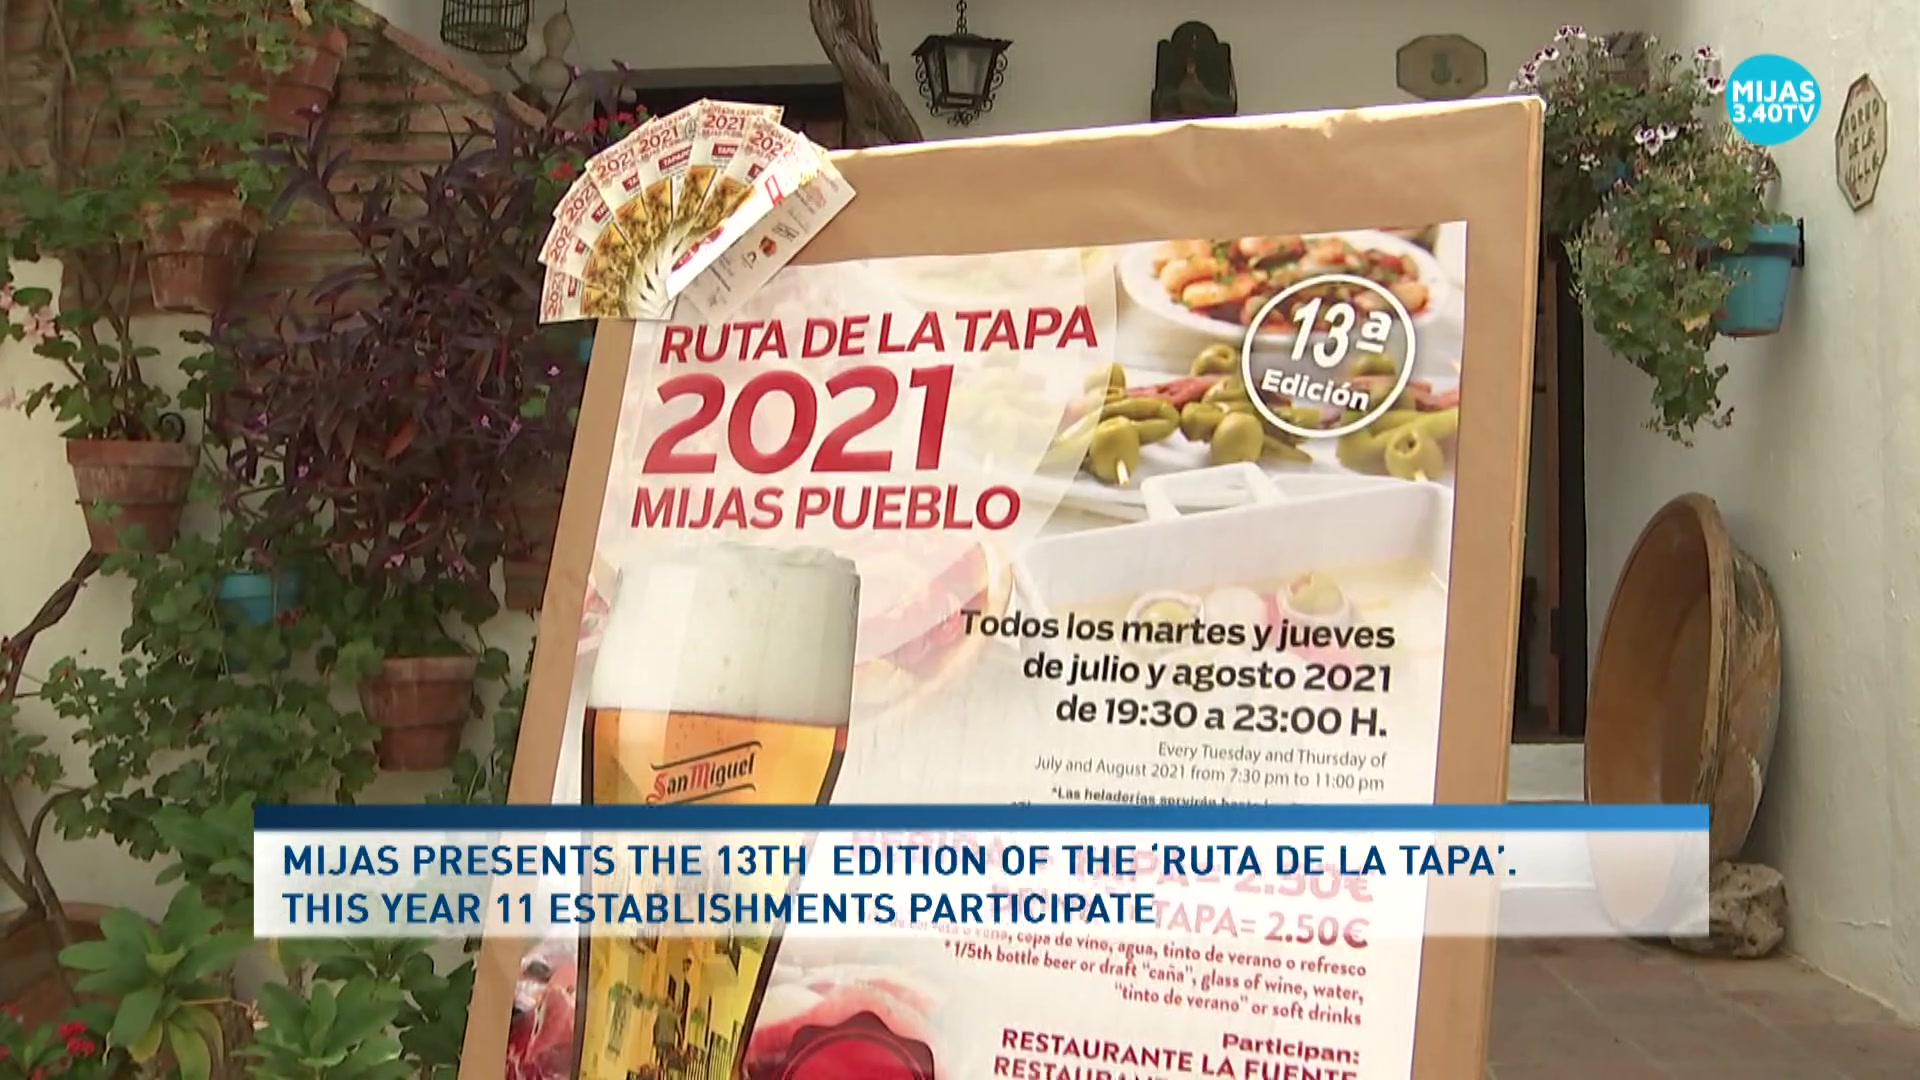 The Council for Tourism presents the 13th Tapa Route in Mijas Pueblo